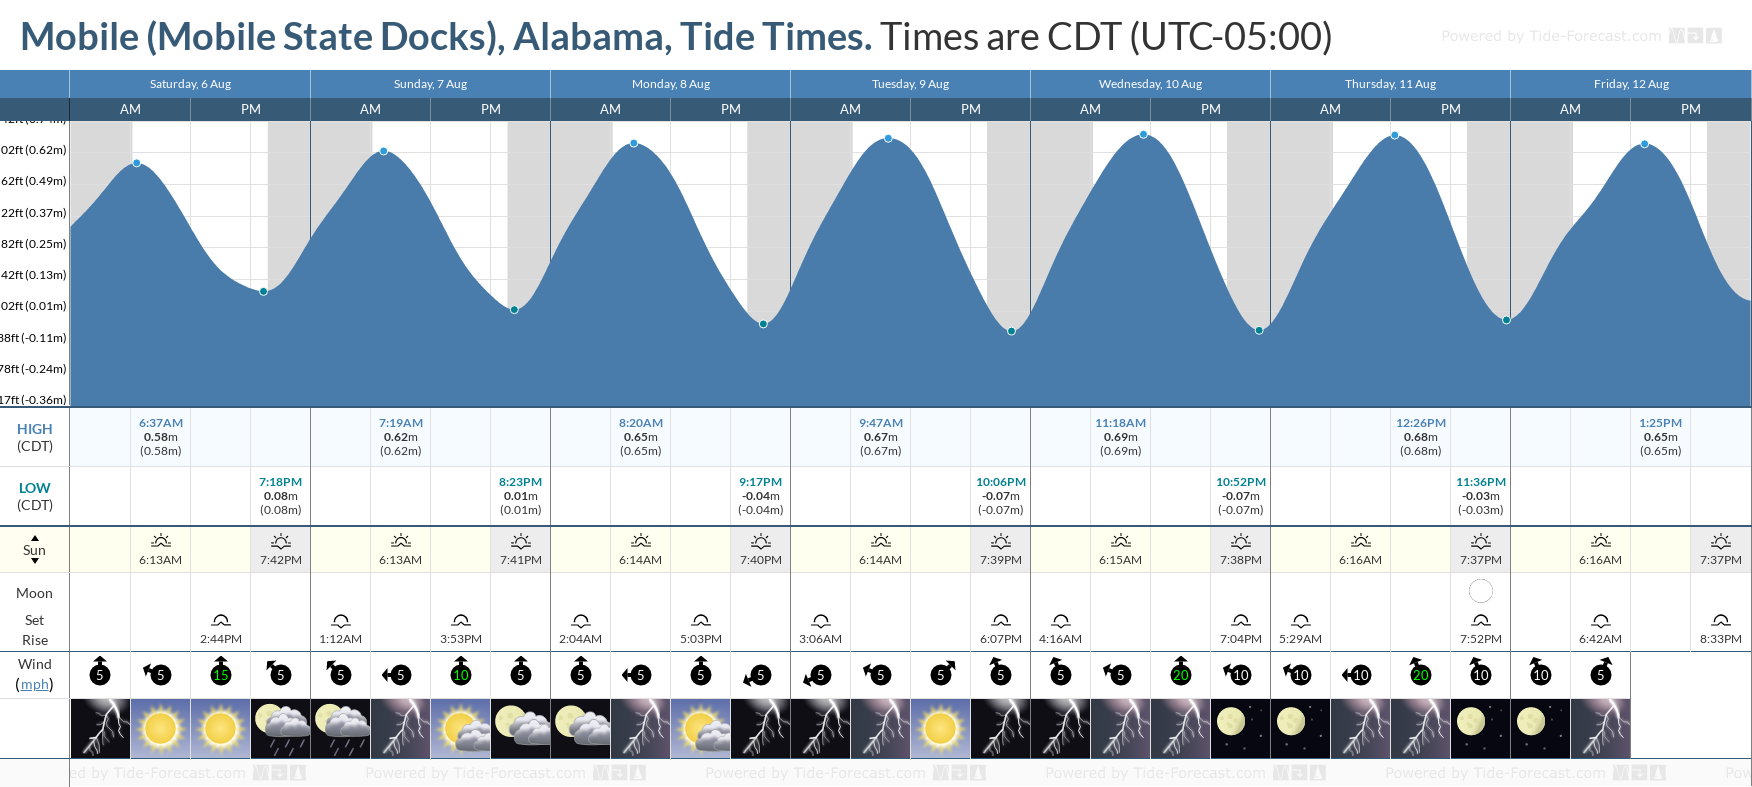 Mobile (Mobile State Docks), Alabama Tide Chart including high and low tide tide times for the next 7 days